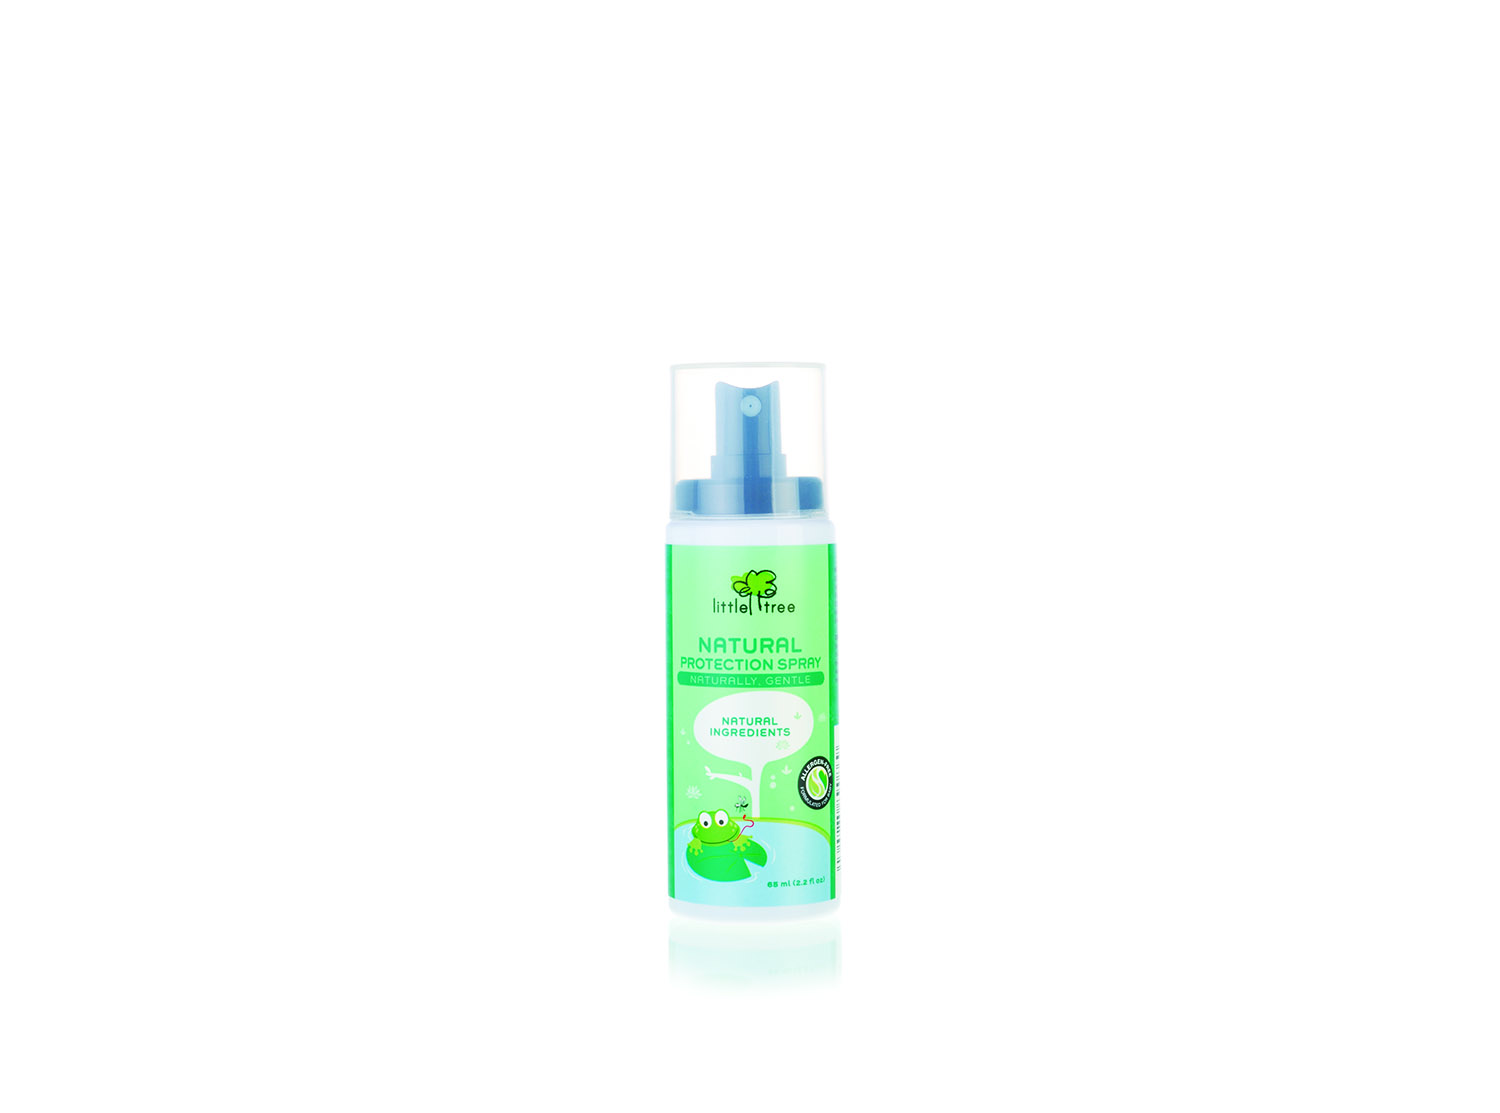 baby-fairLittle Tree Natural Protection Spray (65ml) - Bundle Of 2